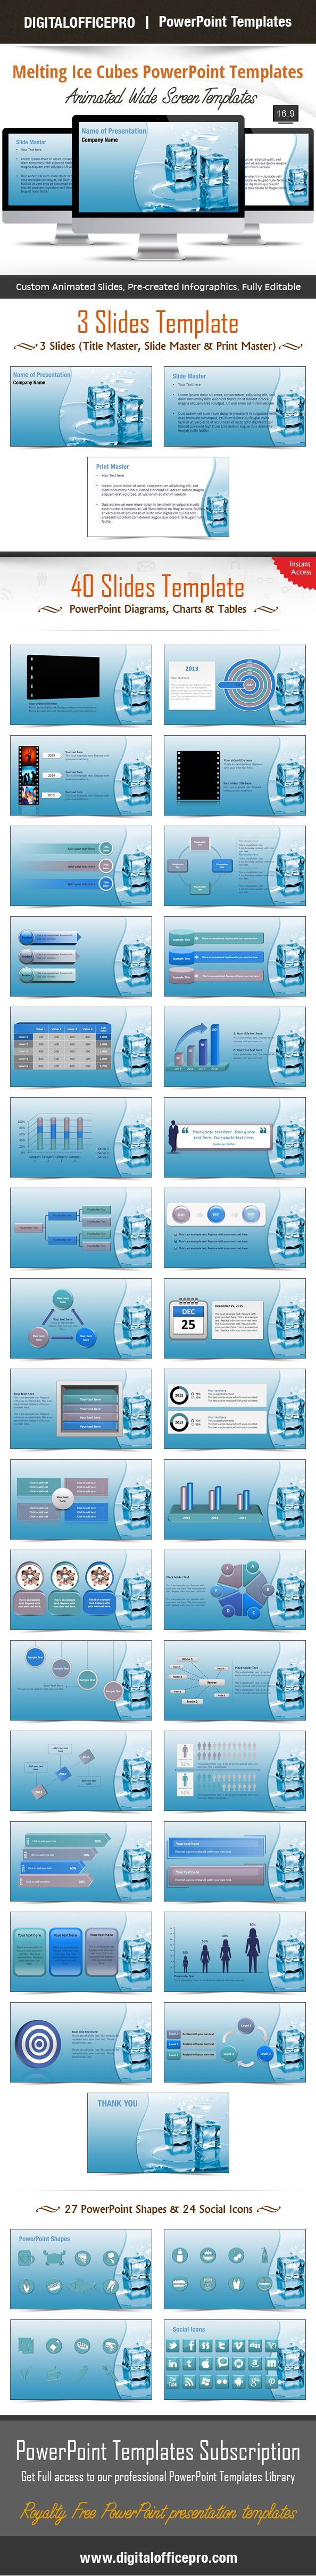 12 best powerpoint inspiration images on pinterest presentation impress and engage your audience with melting ice cubes powerpoint template and melting ice cubes powerpoint toneelgroepblik Image collections